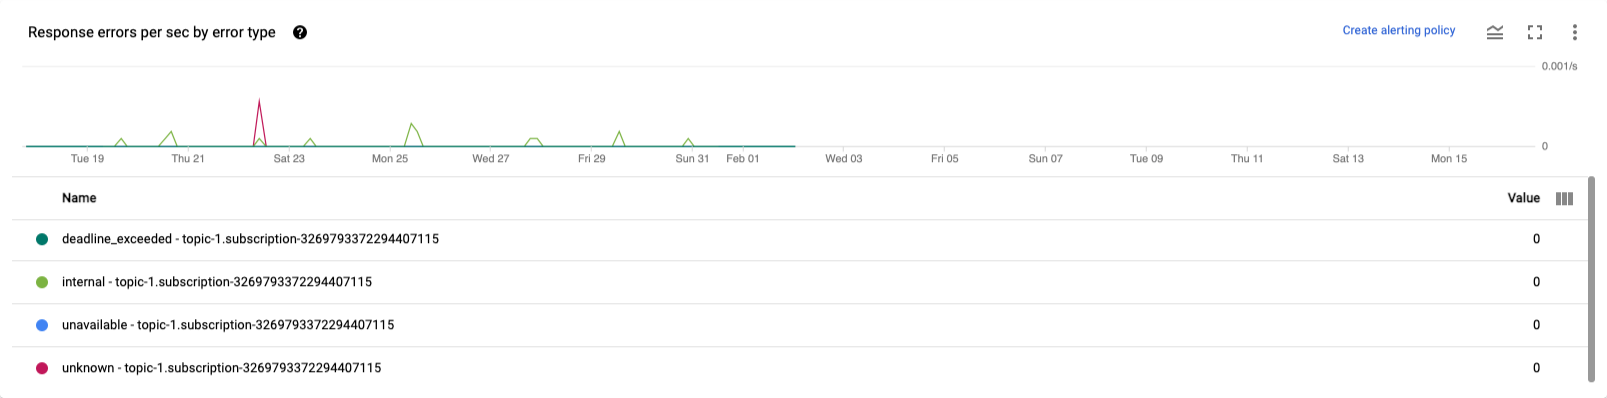 A chart showing the rate of failed API requests to read or write data by the source or sink over time.